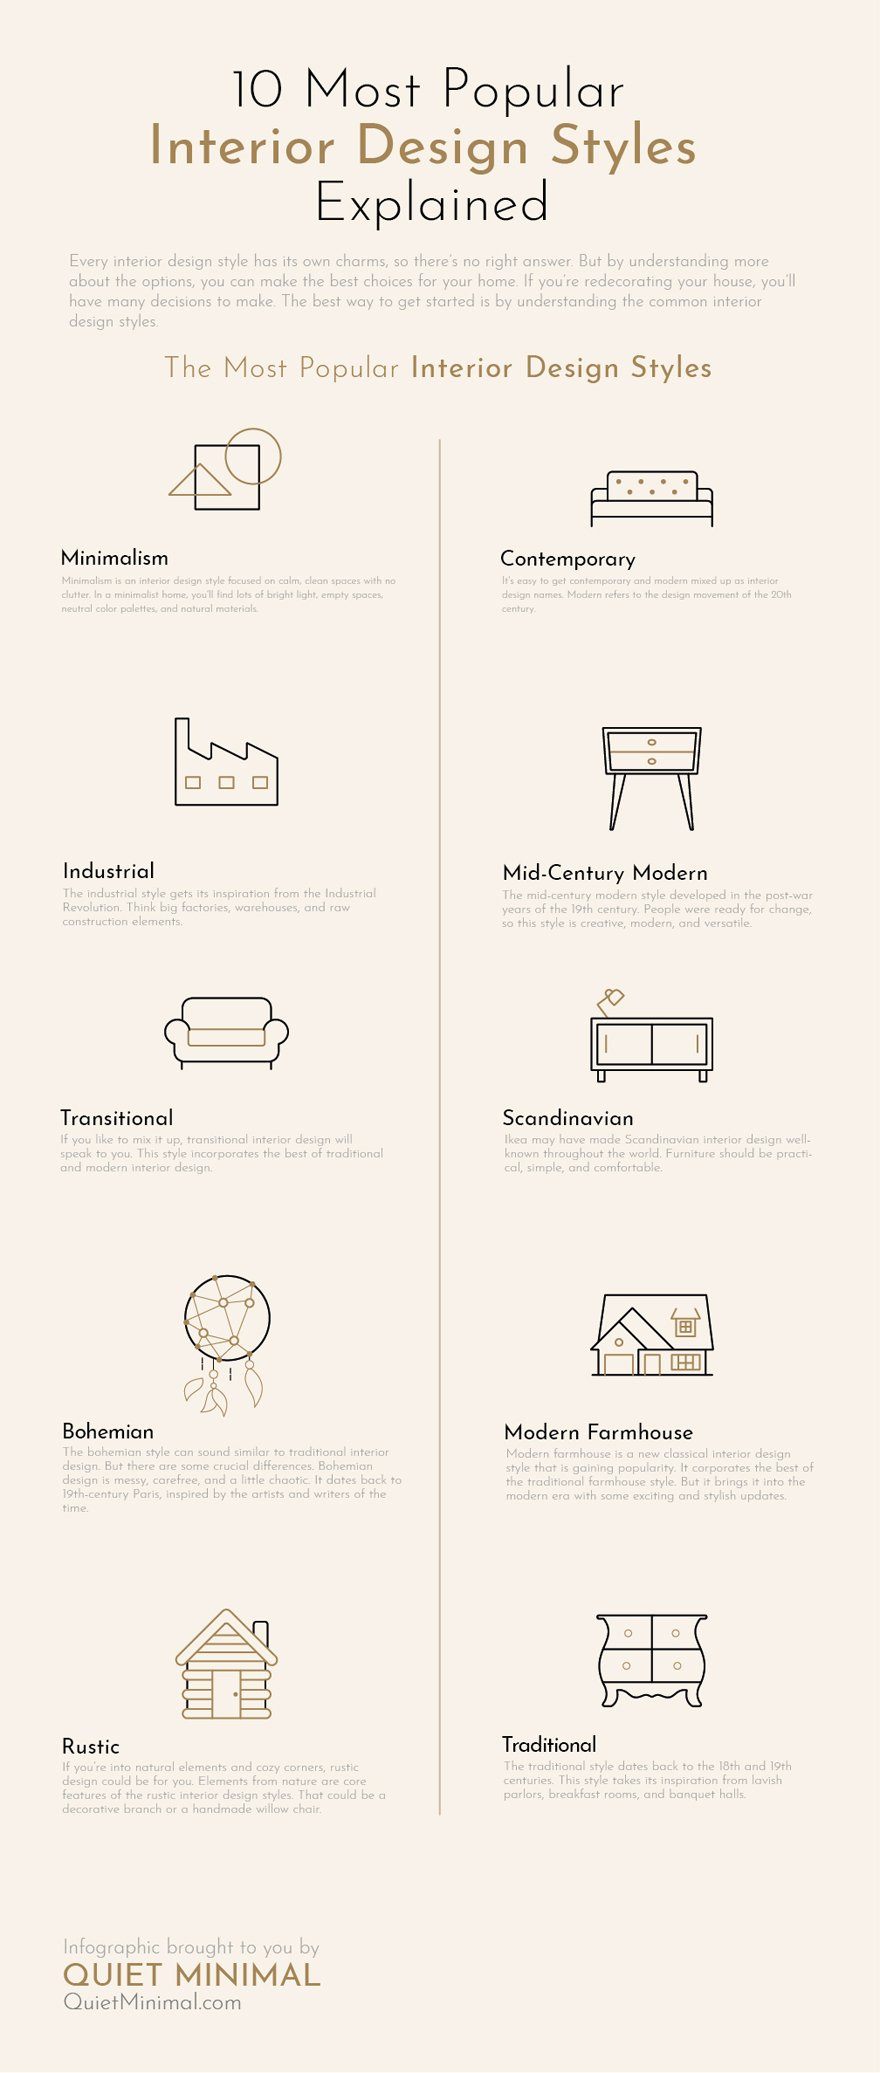 10 Most Popular Interior Design Styles Explained (Infographic)